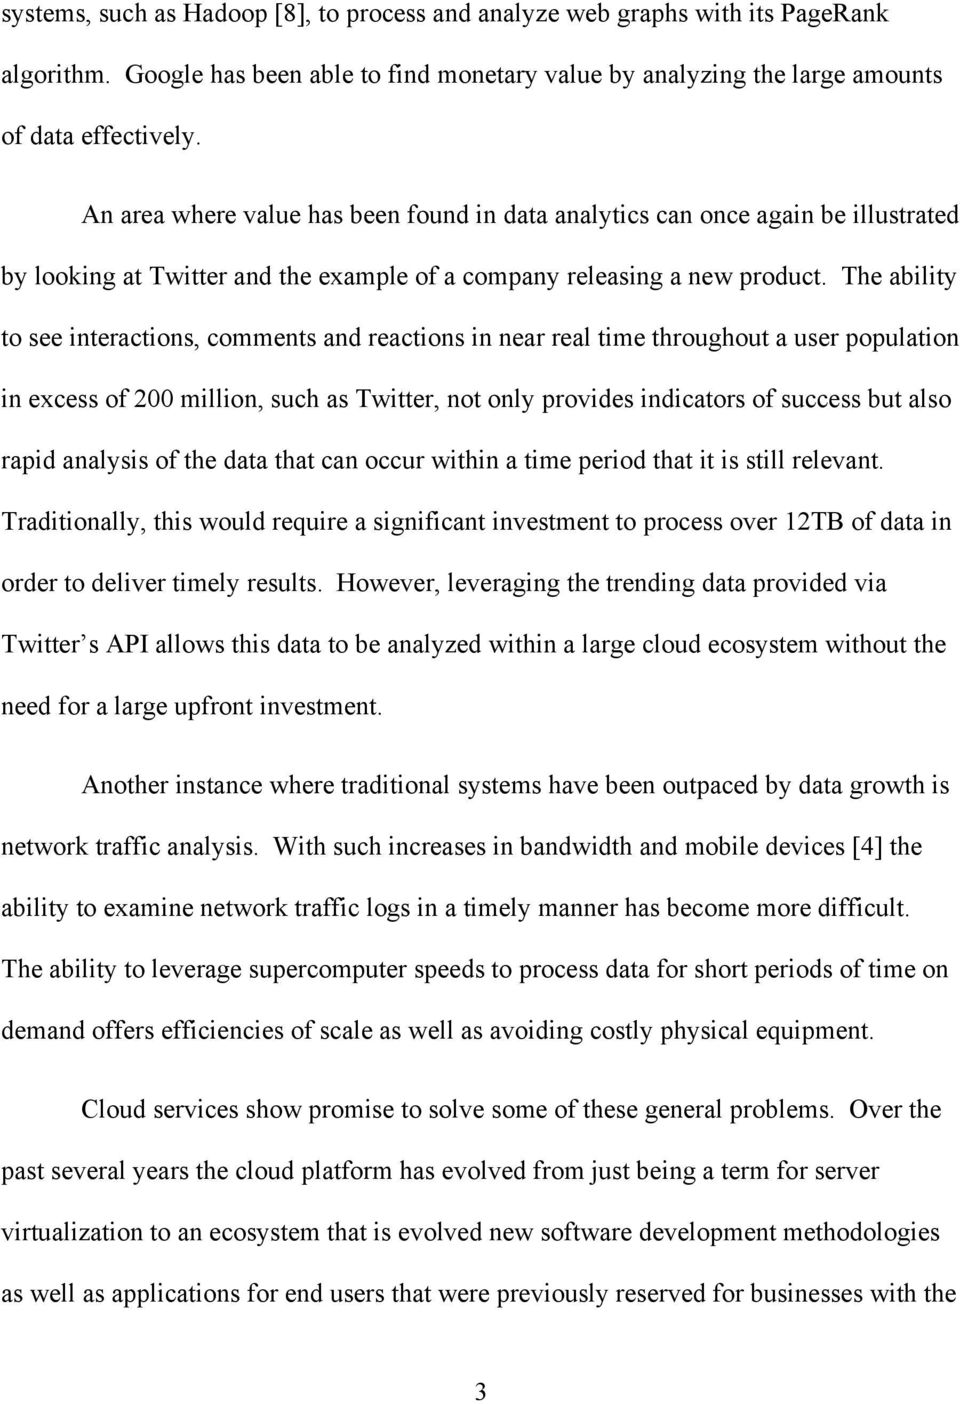 The ability to see interactions, comments and reactions in near real time throughout a user population in excess of 200 million, such as Twitter, not only provides indicators of success but also